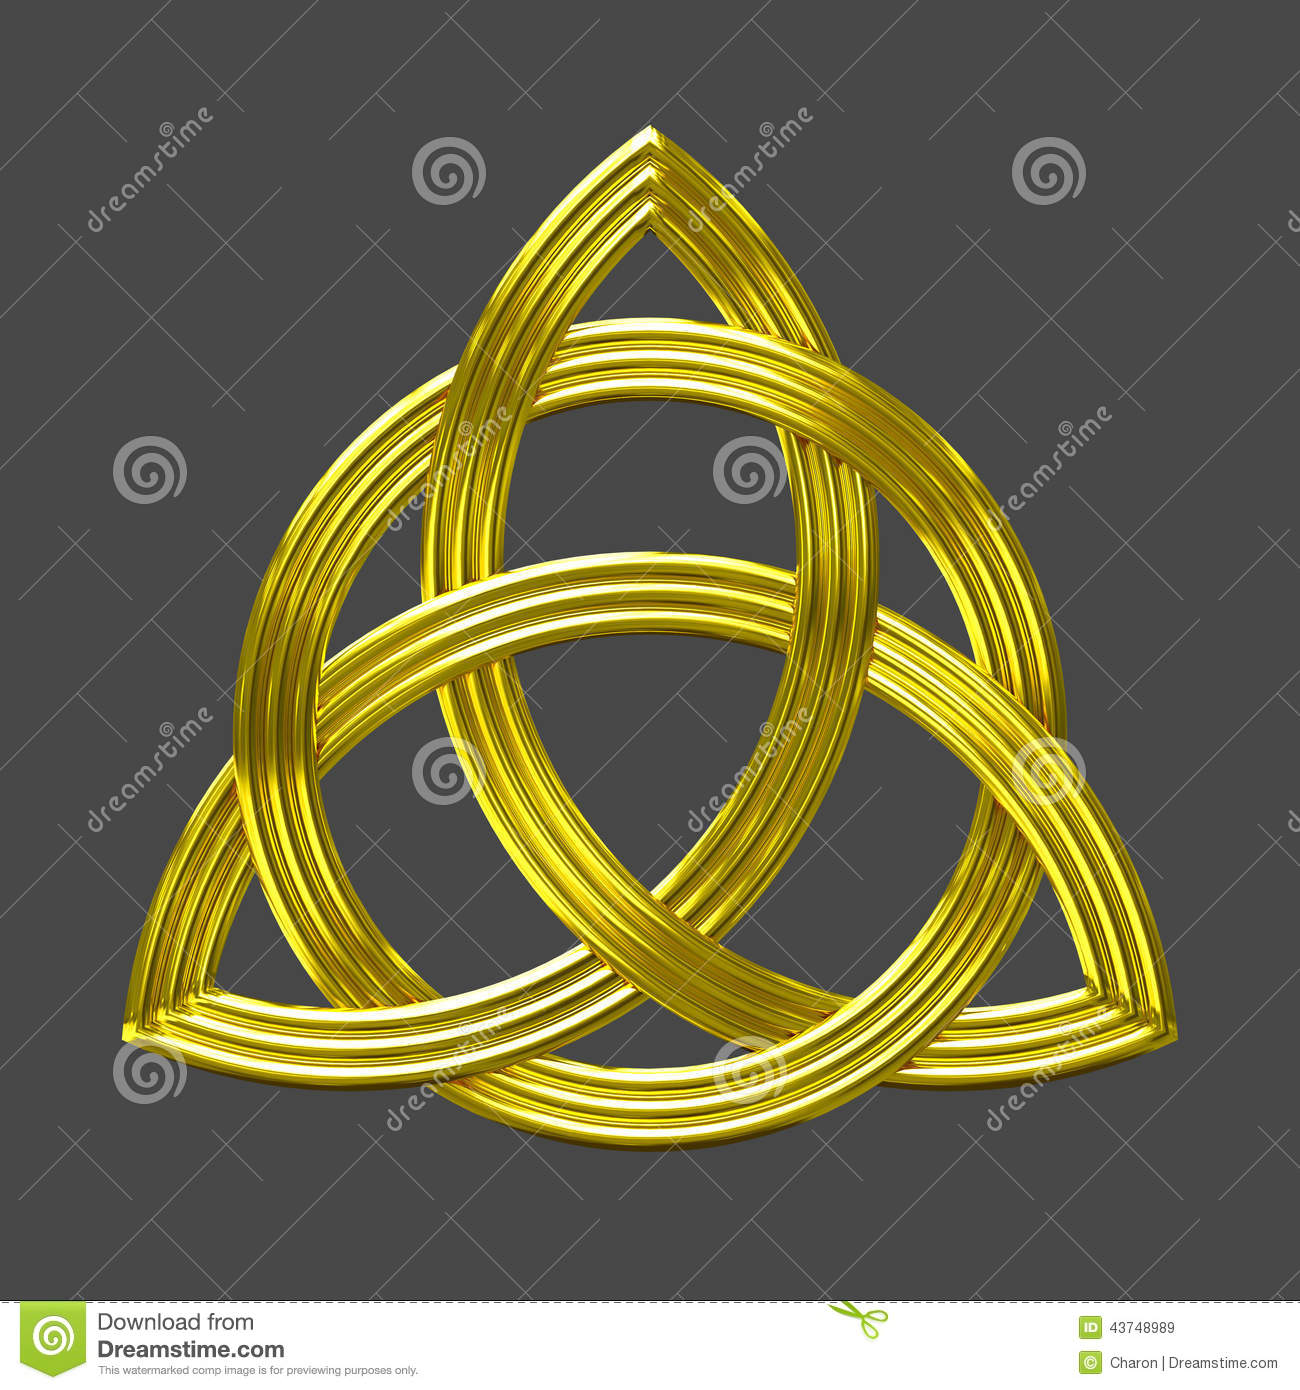 triquetra trinity knot gold symbol stock image image of. Black Bedroom Furniture Sets. Home Design Ideas